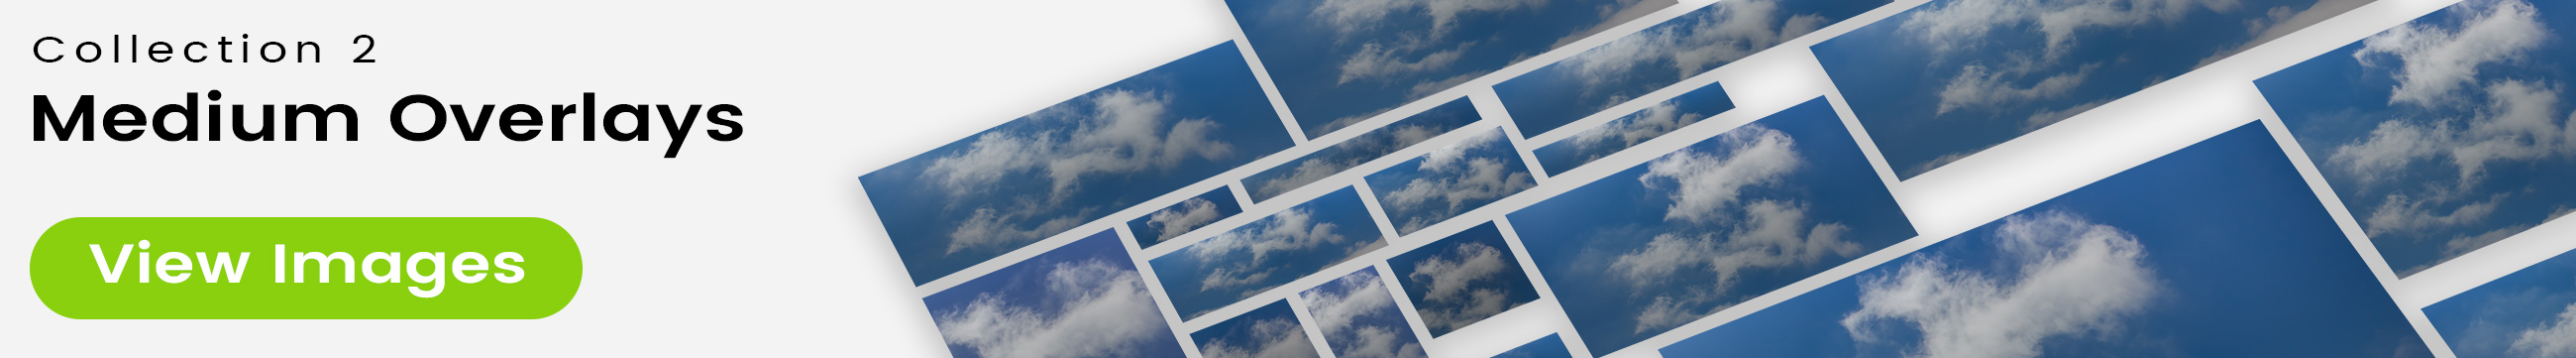 See 25 bonus images included with clouds stock image 9472. Collection 2 of 4 features a medium-dark overlay design.